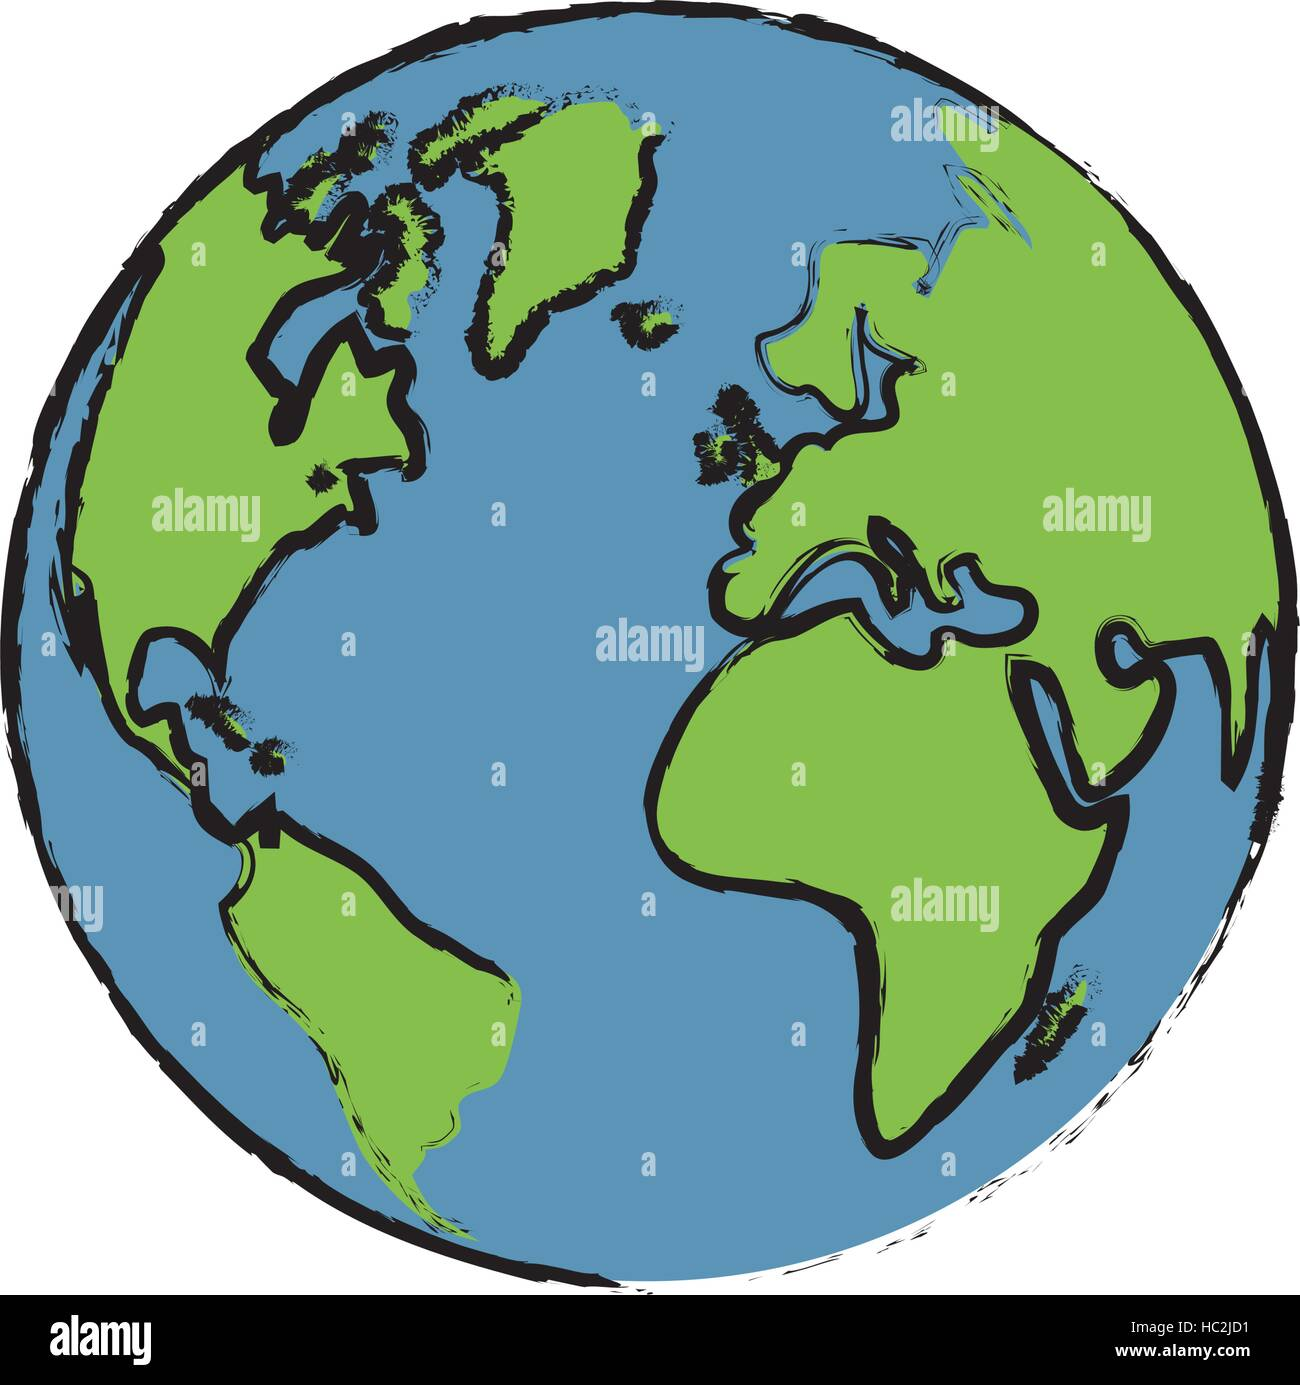 Page 2 Cartoon Globe Map World Earth High Resolution Stock